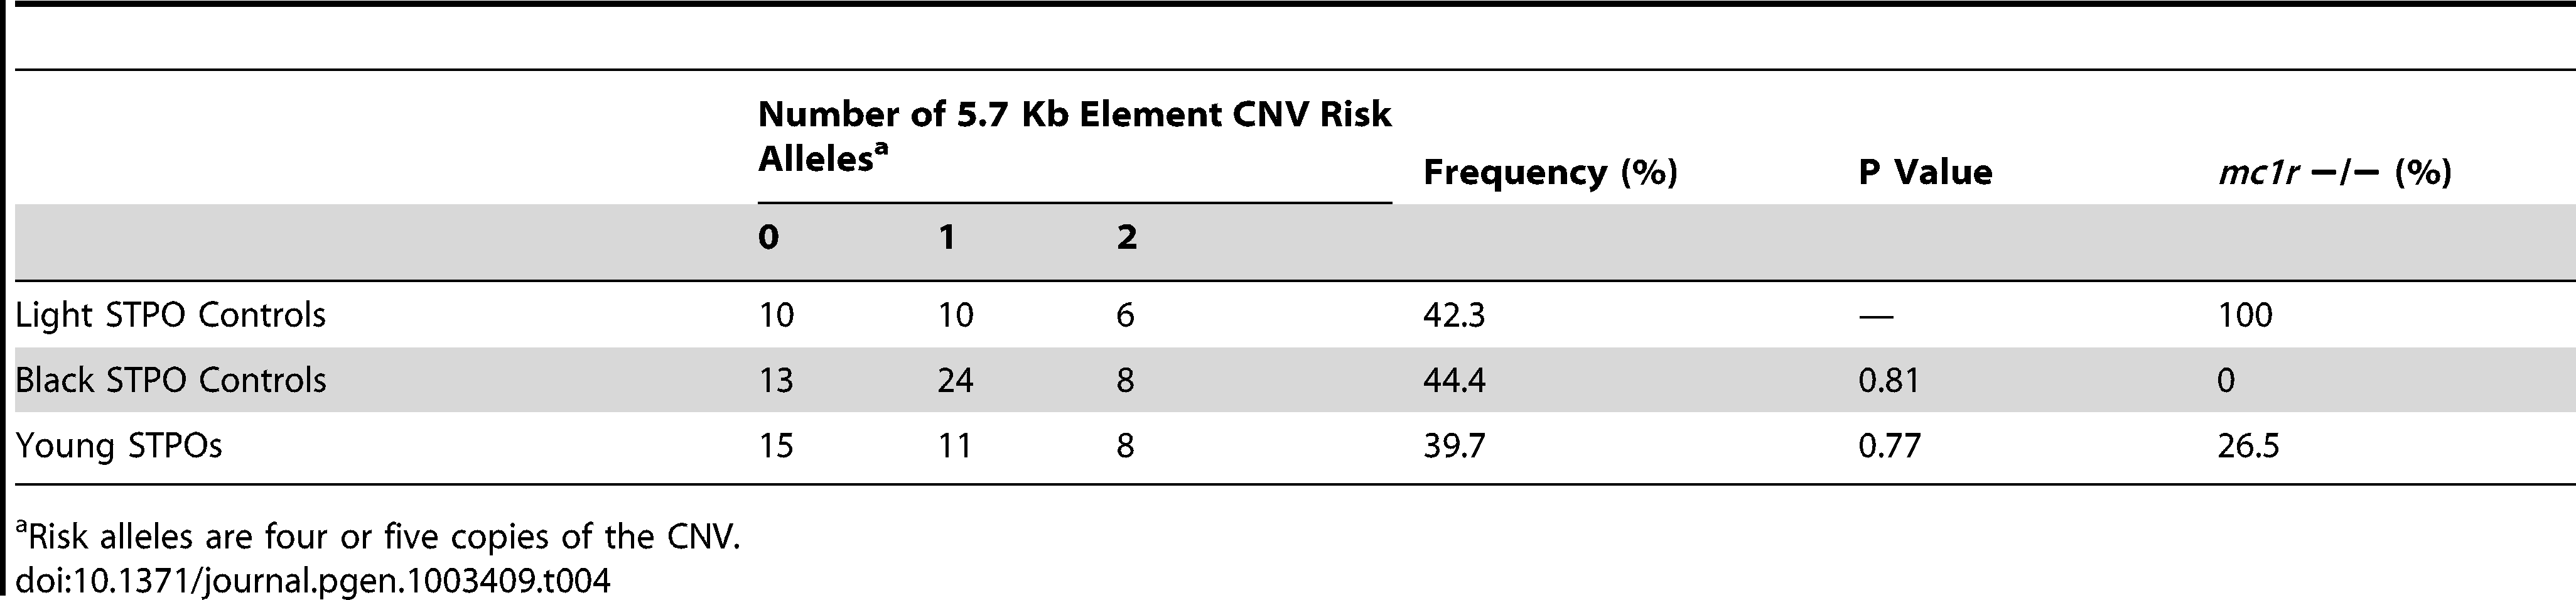 Frequency of the 5.7-Kb element CNV in light colored, black, and young STPOs.